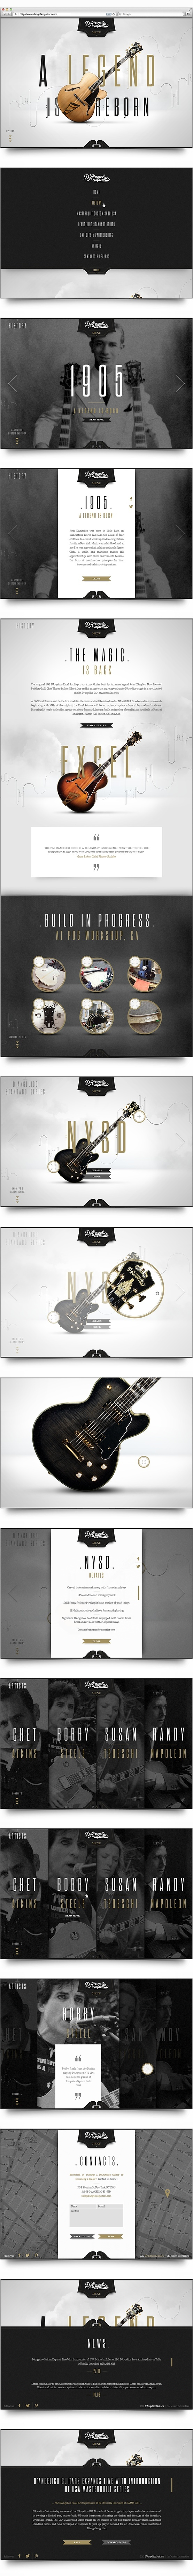 D'Angelico, web page, guitars, full bleed